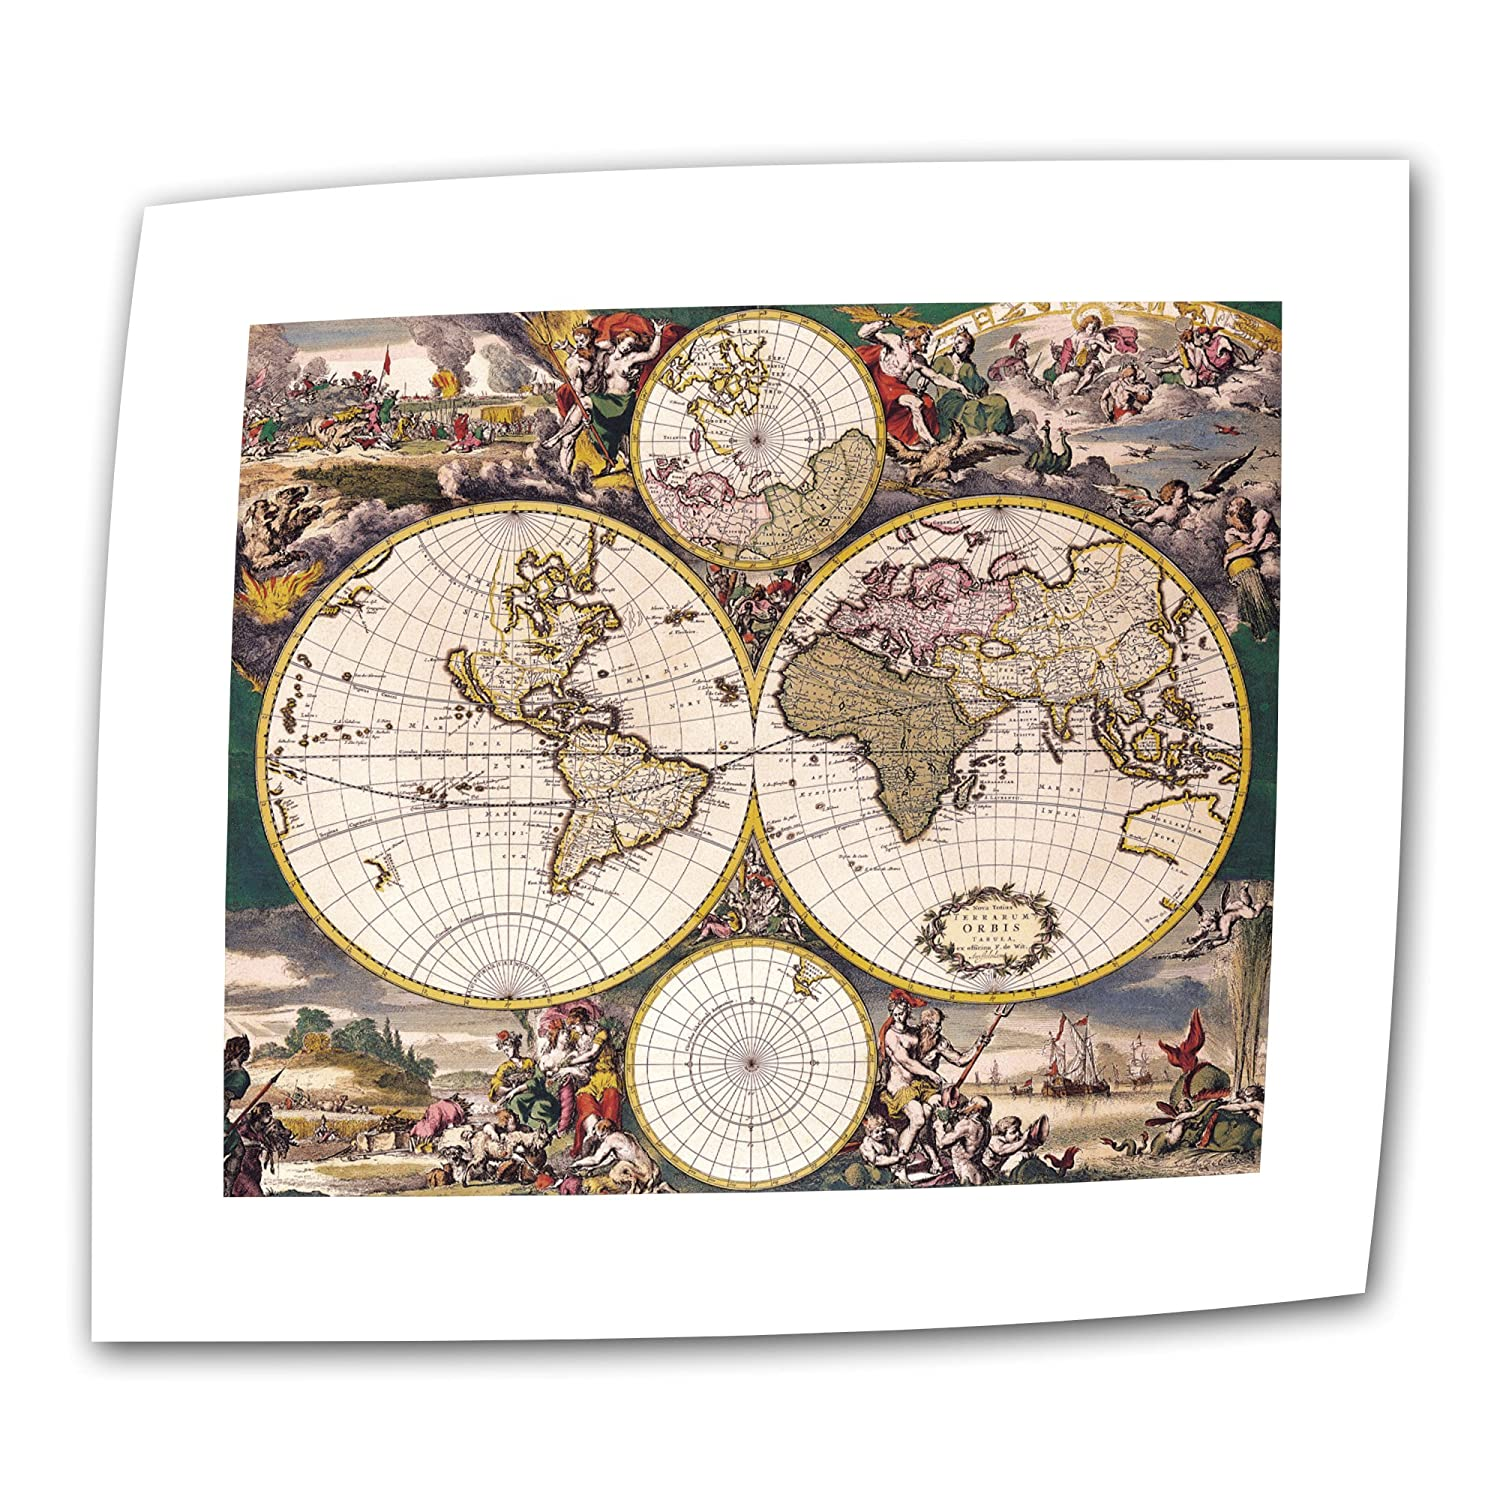 18 by 22-Inch ArtWall Terrarum Orbis Antique Map Unwrapped Canvas Art with 2-Inch Accent Border